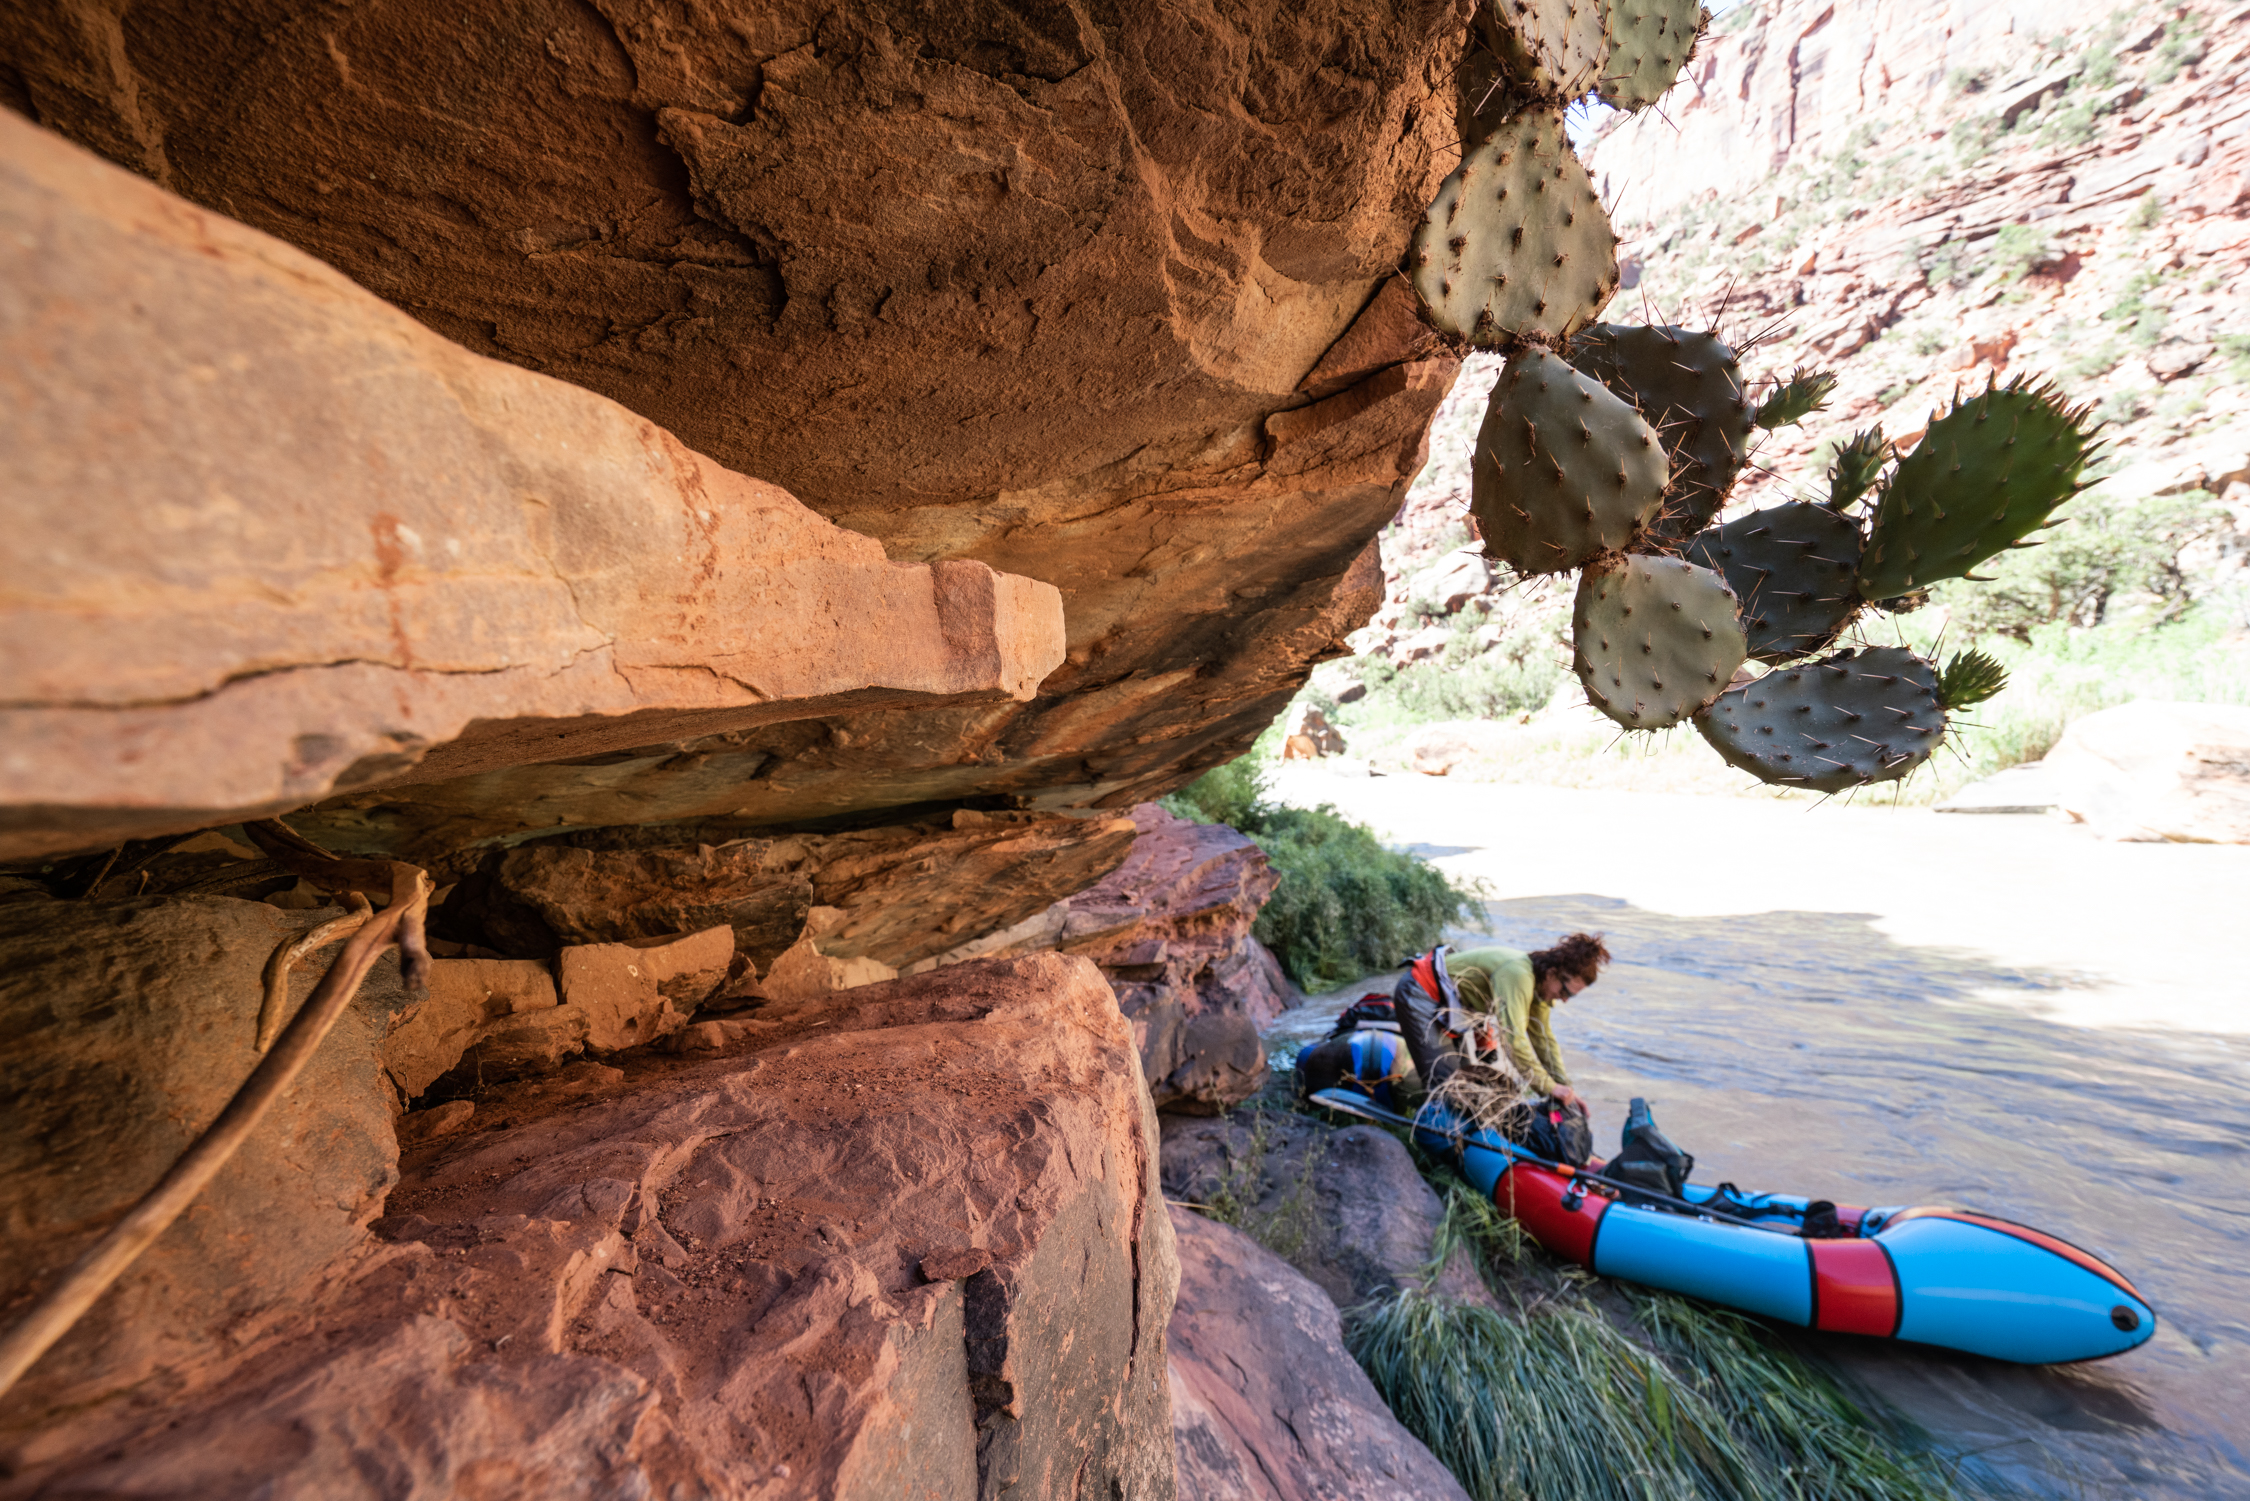 The Dolores River packrafting Tour